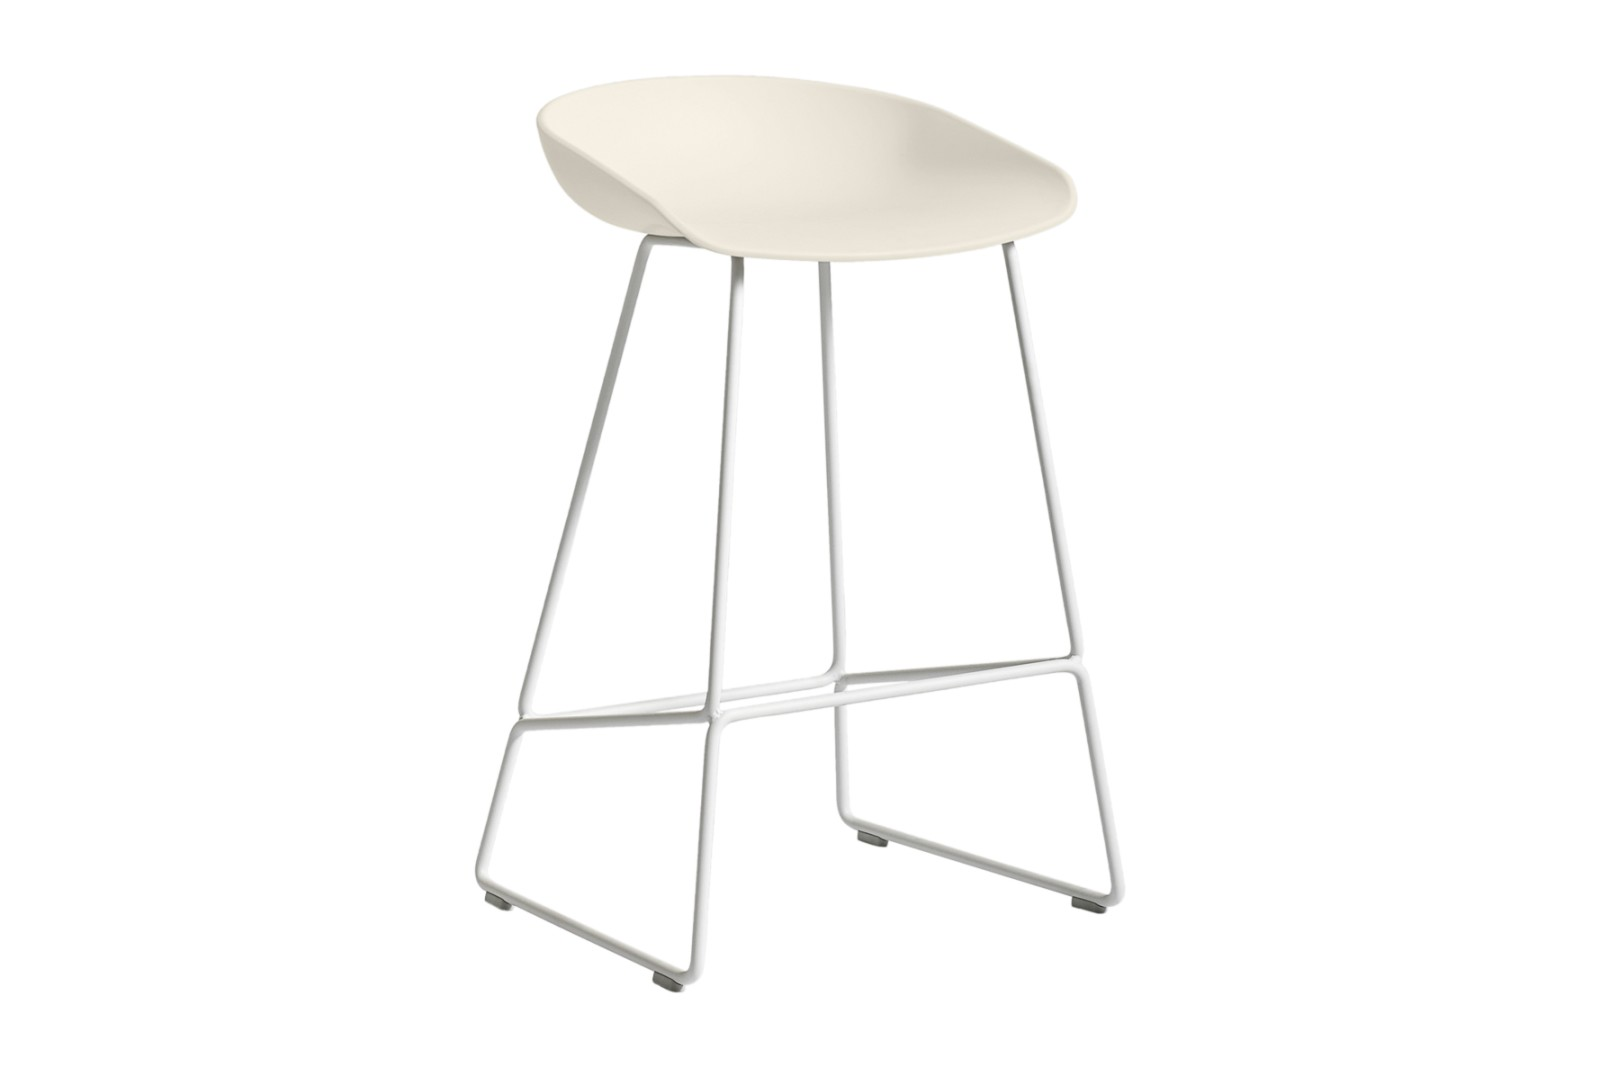 About A Stool AAS38 Cream White Seat and White Base, Low